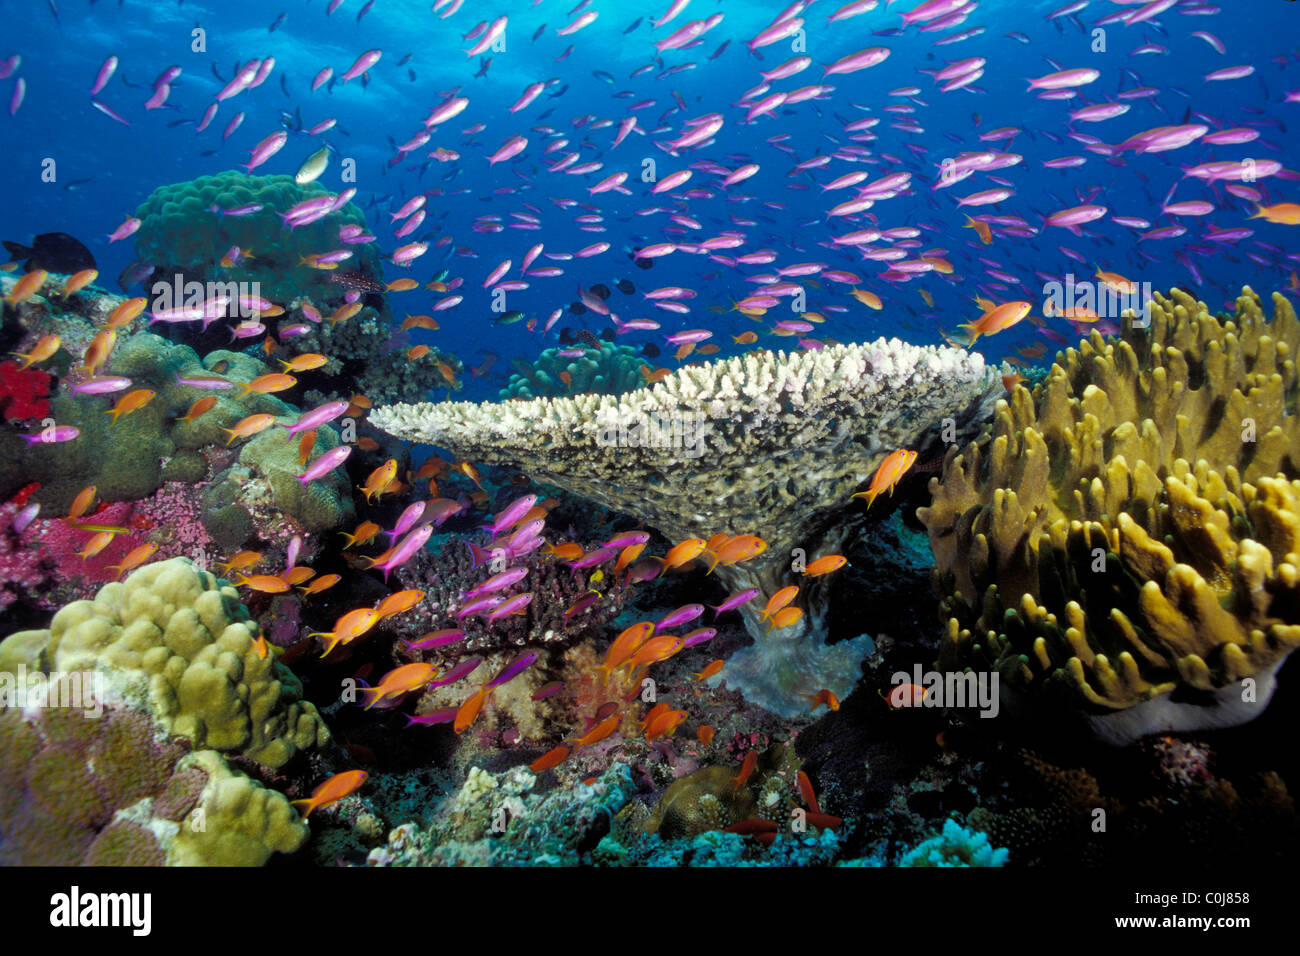 Tropical coral reef, Fiji, Pacific Ocean - Stock Image